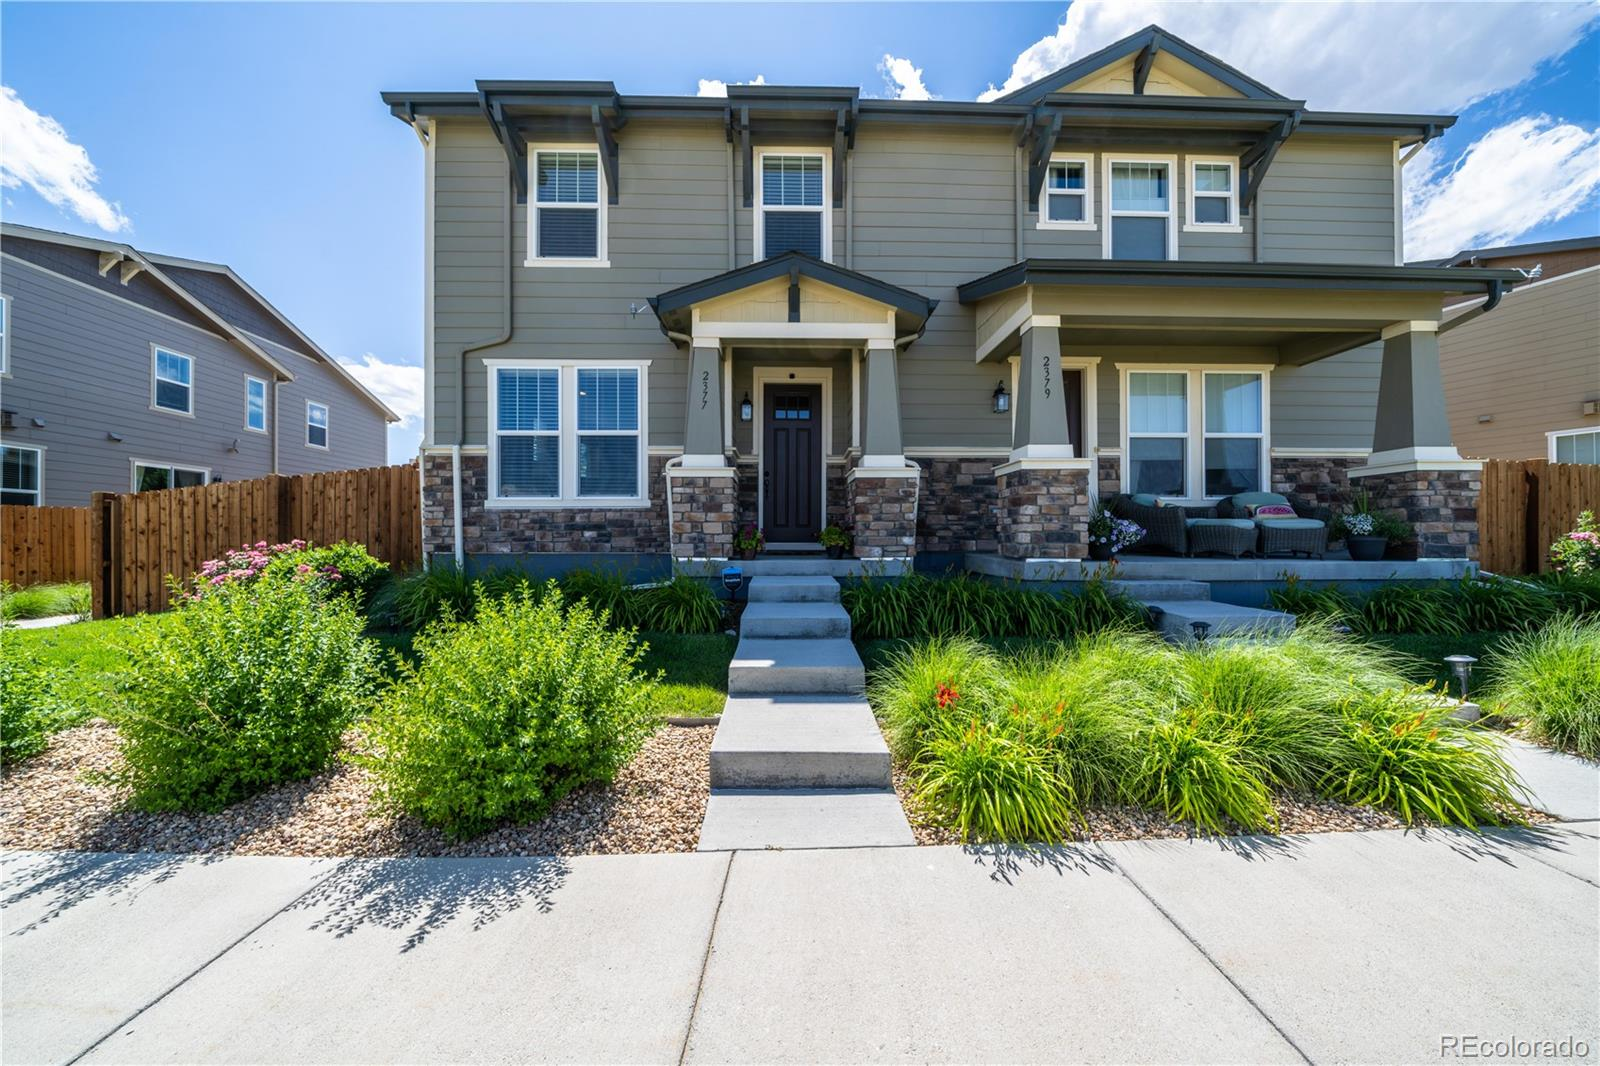 2377 W 165th Lane Property Photo - Broomfield, CO real estate listing